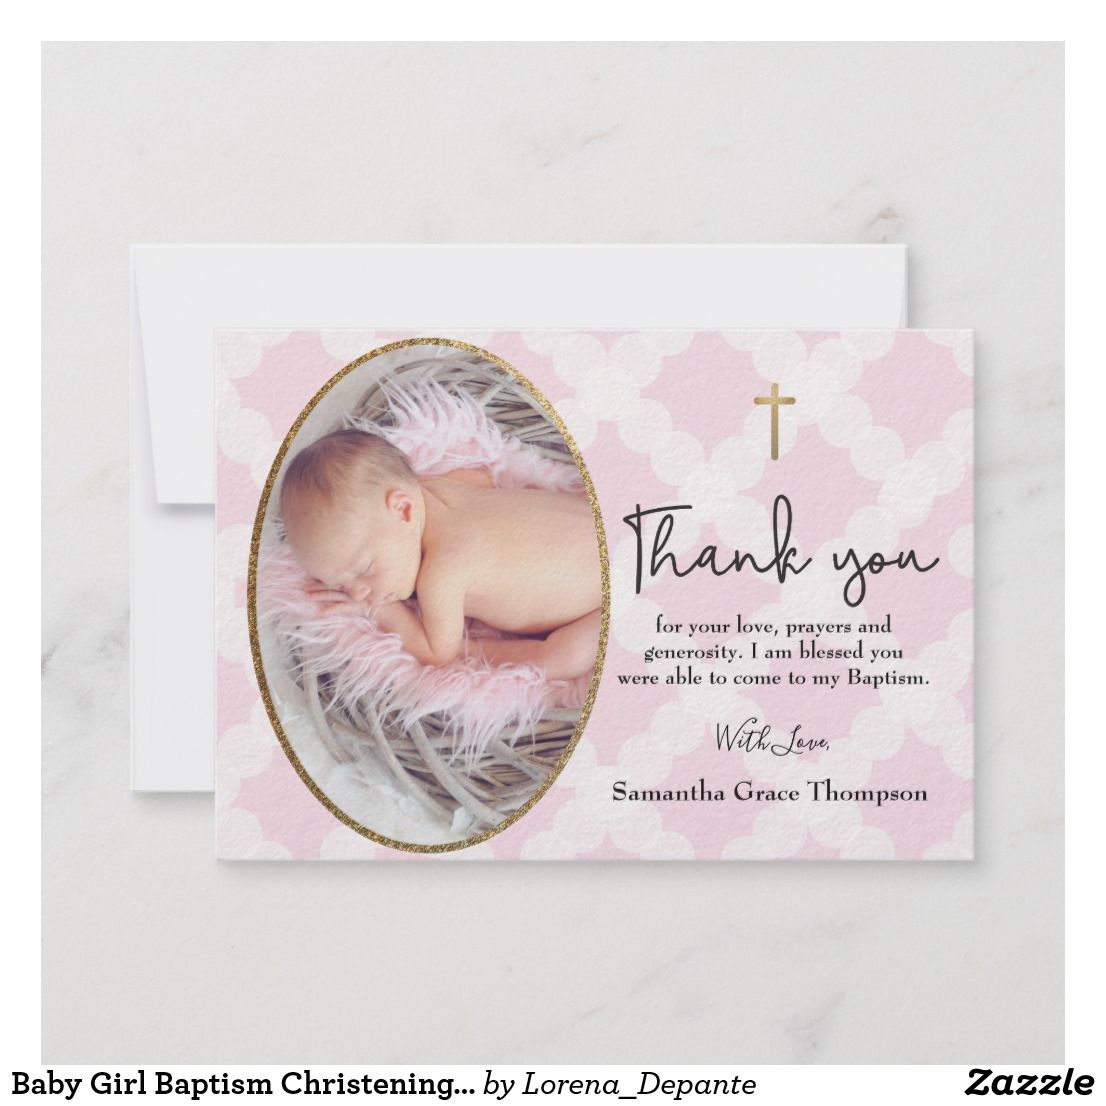 Baby Girl Baptism Christening Pink White Thank You Zazzle Com Baby Girl Baptism Baptism Girl Baptism Thank You Cards